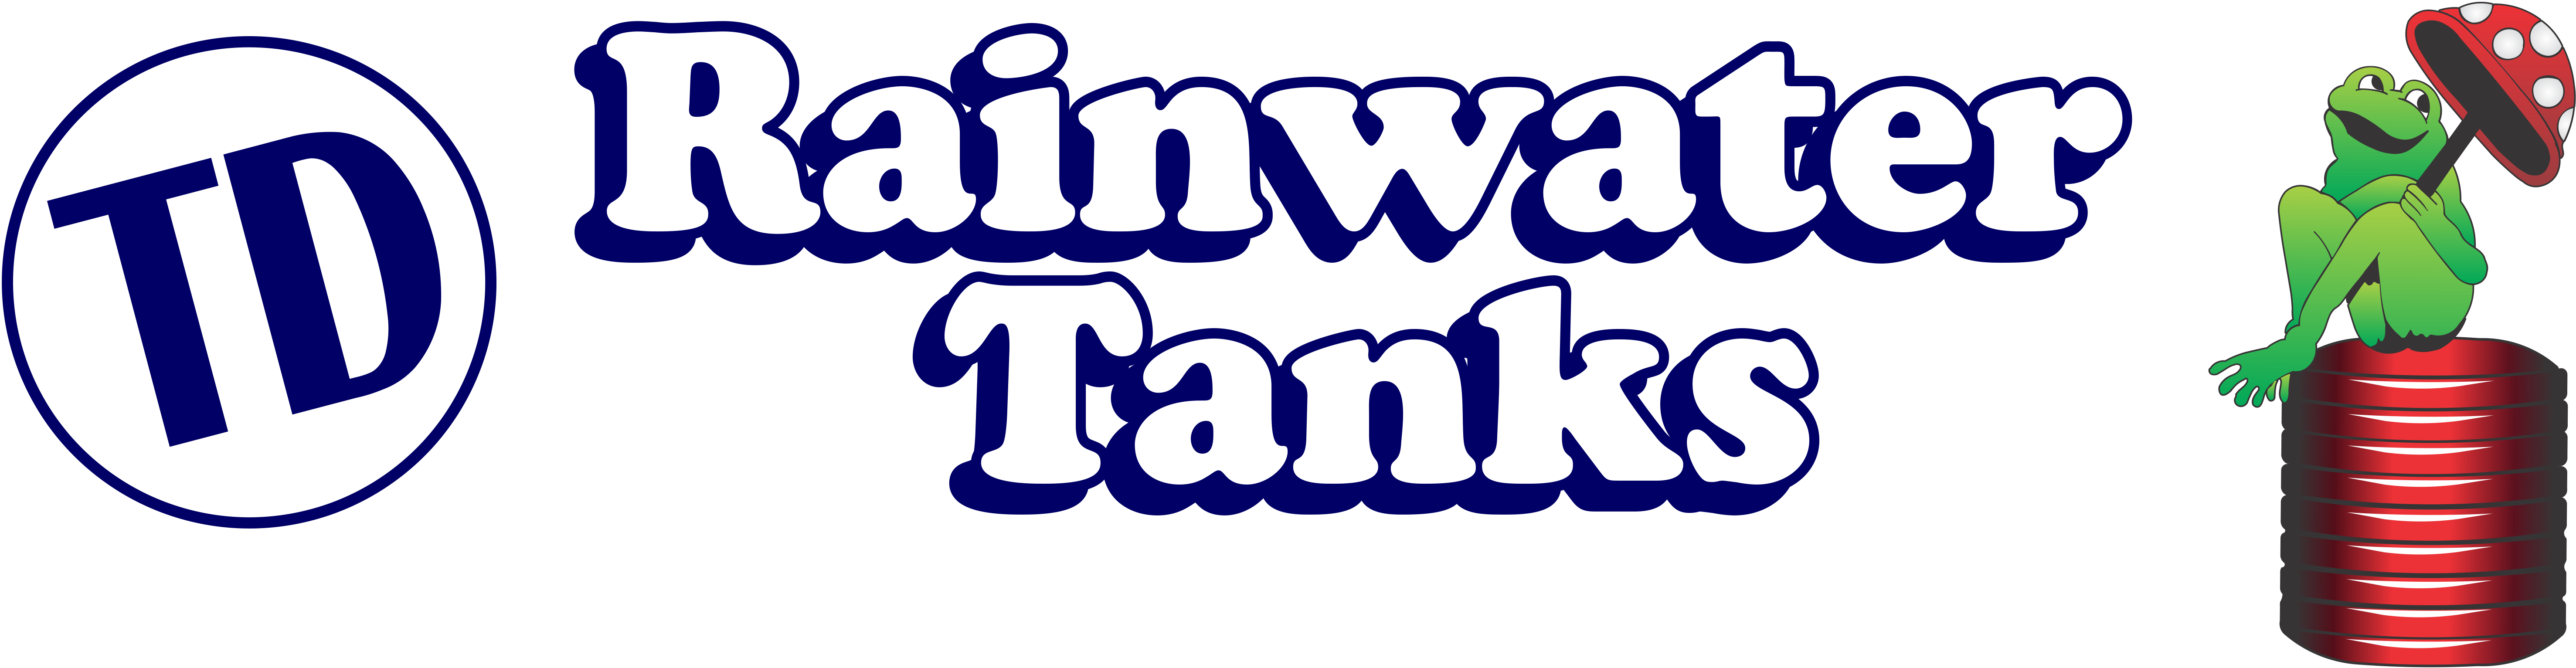 TD Rainwater Tanks & Pumps Sydney